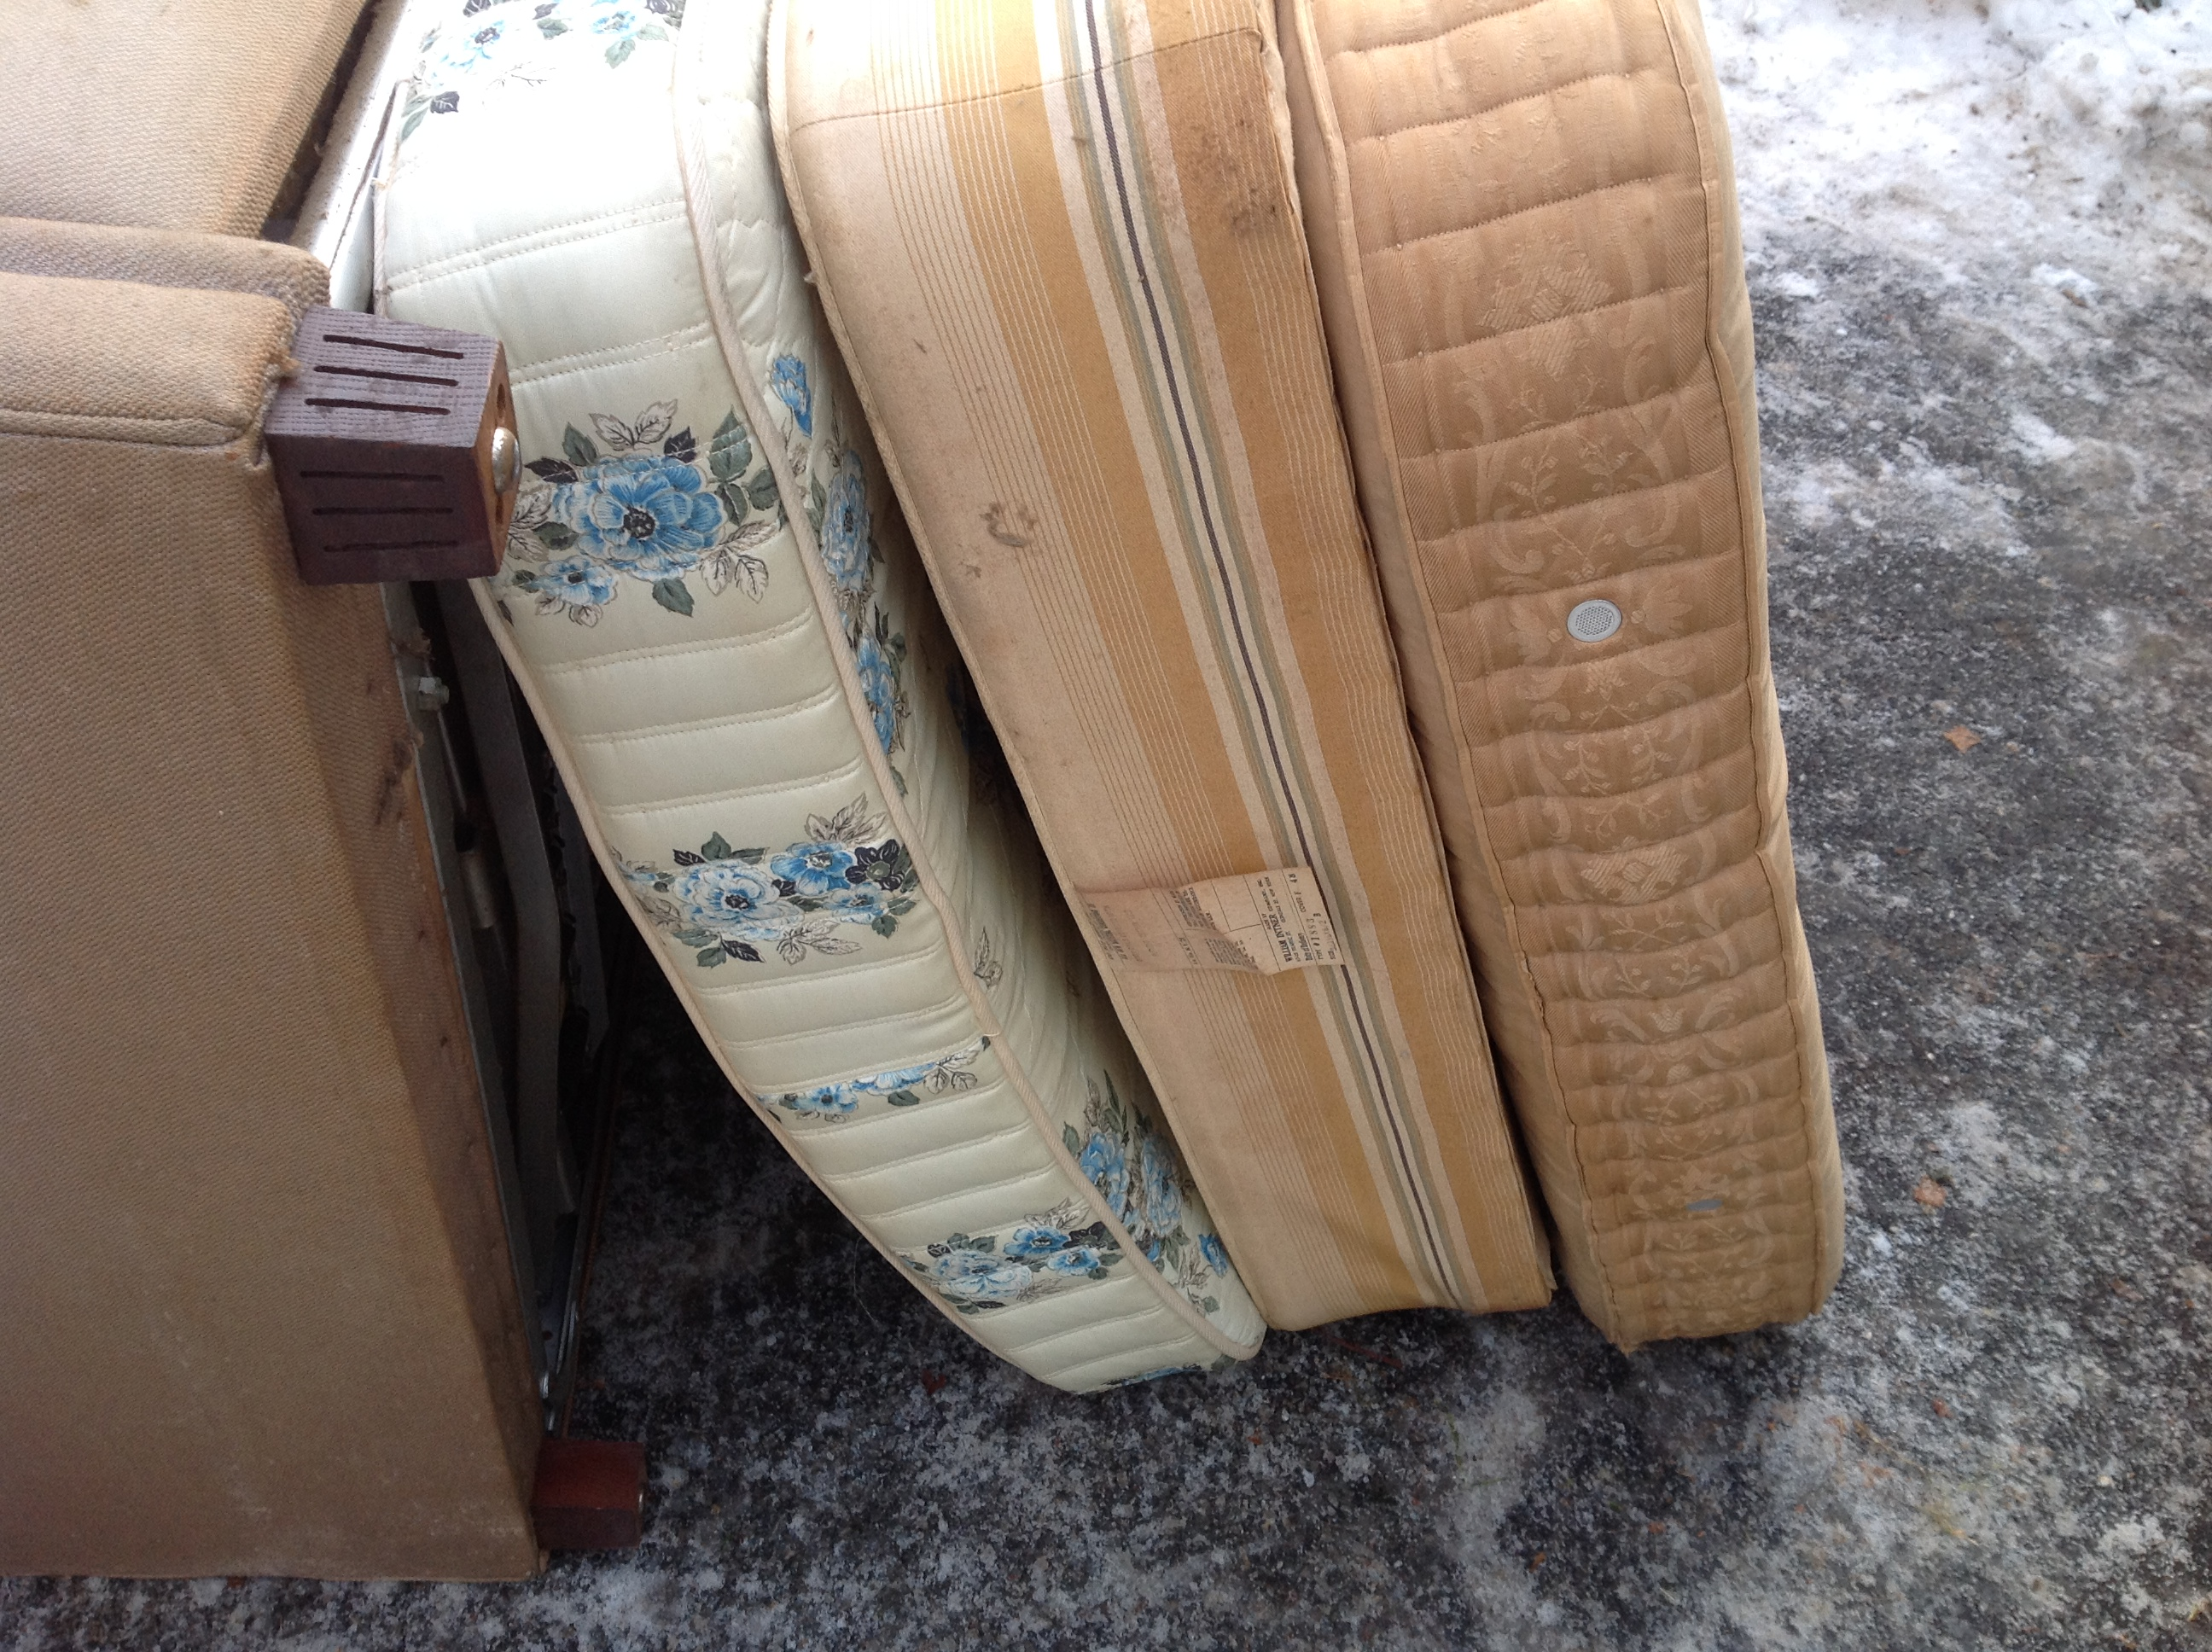 Junk Removal Job Company Finds 50 Year Old Mattress In Glendale